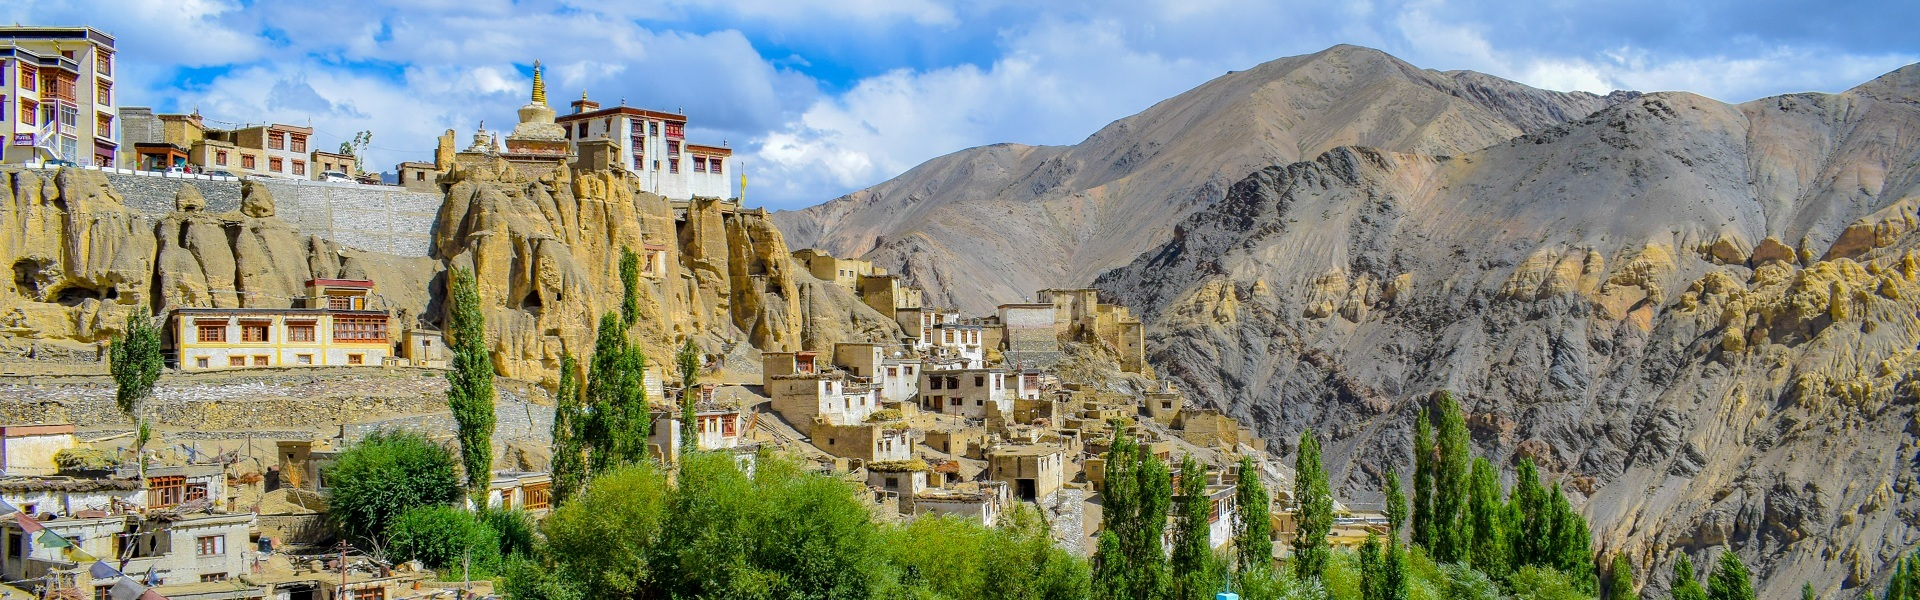 13 Places to visit in June in India